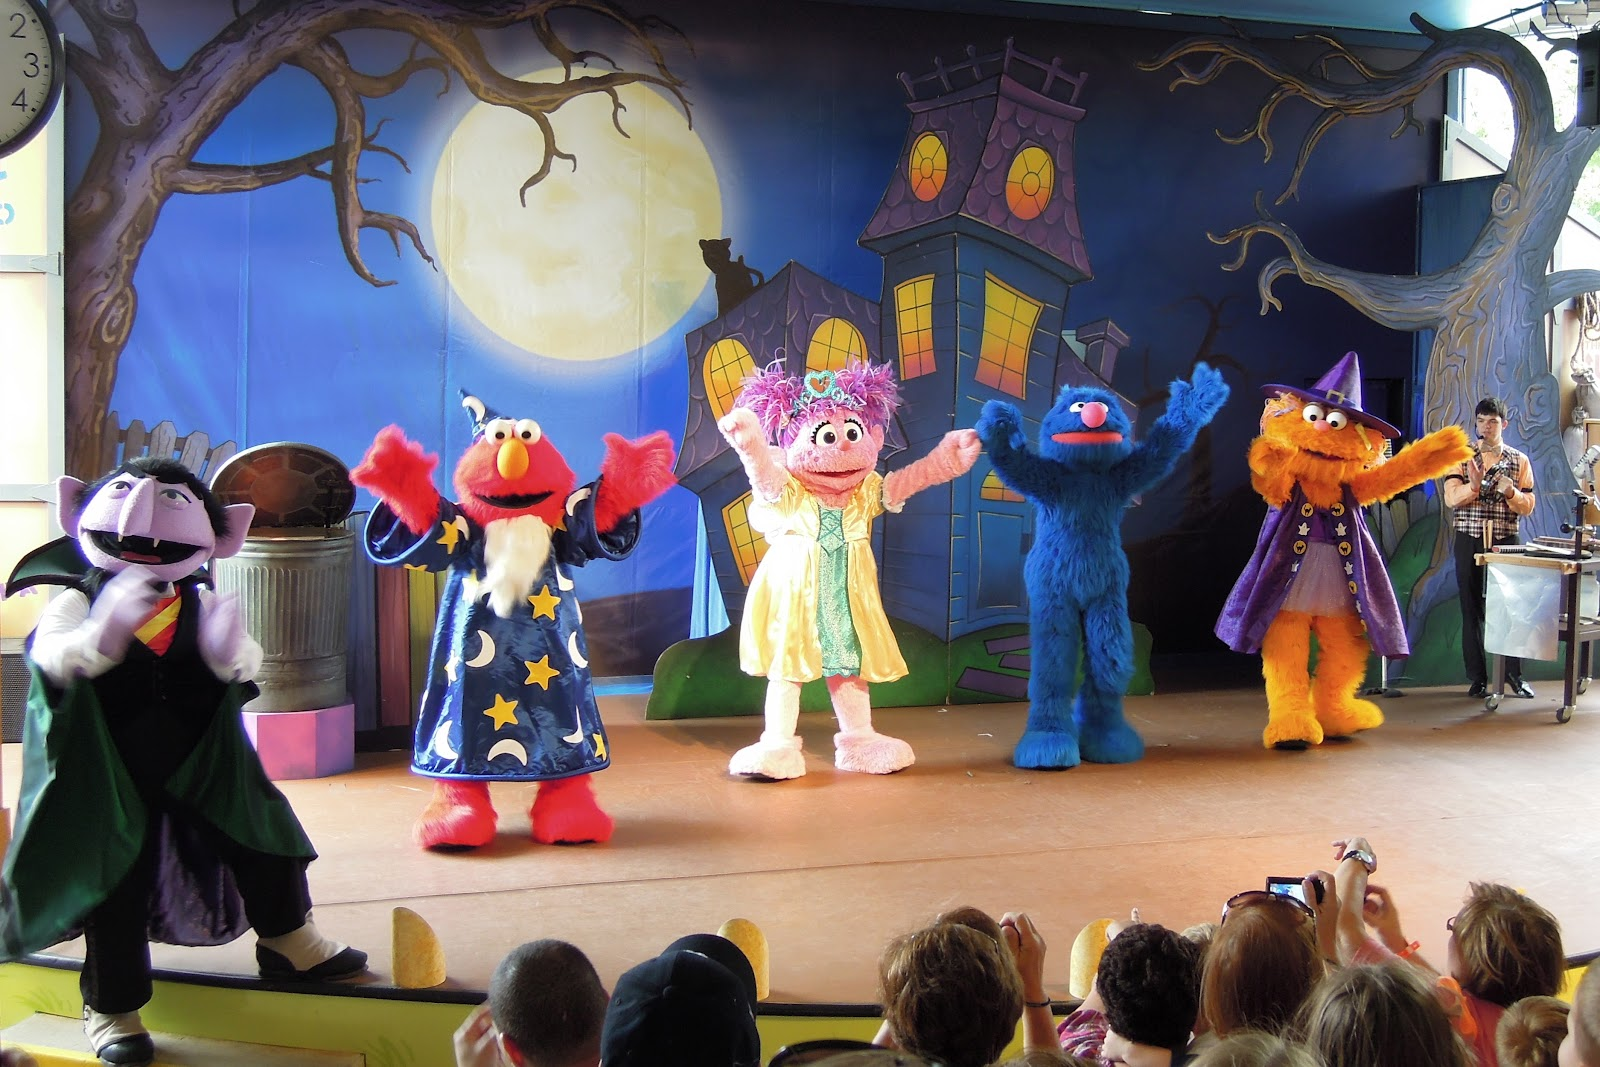 a sesame street character hayride three halloween shows we saw the counts not too spooky howl o ween radio show and loved it and everyones favorite - Sesame Place Halloween